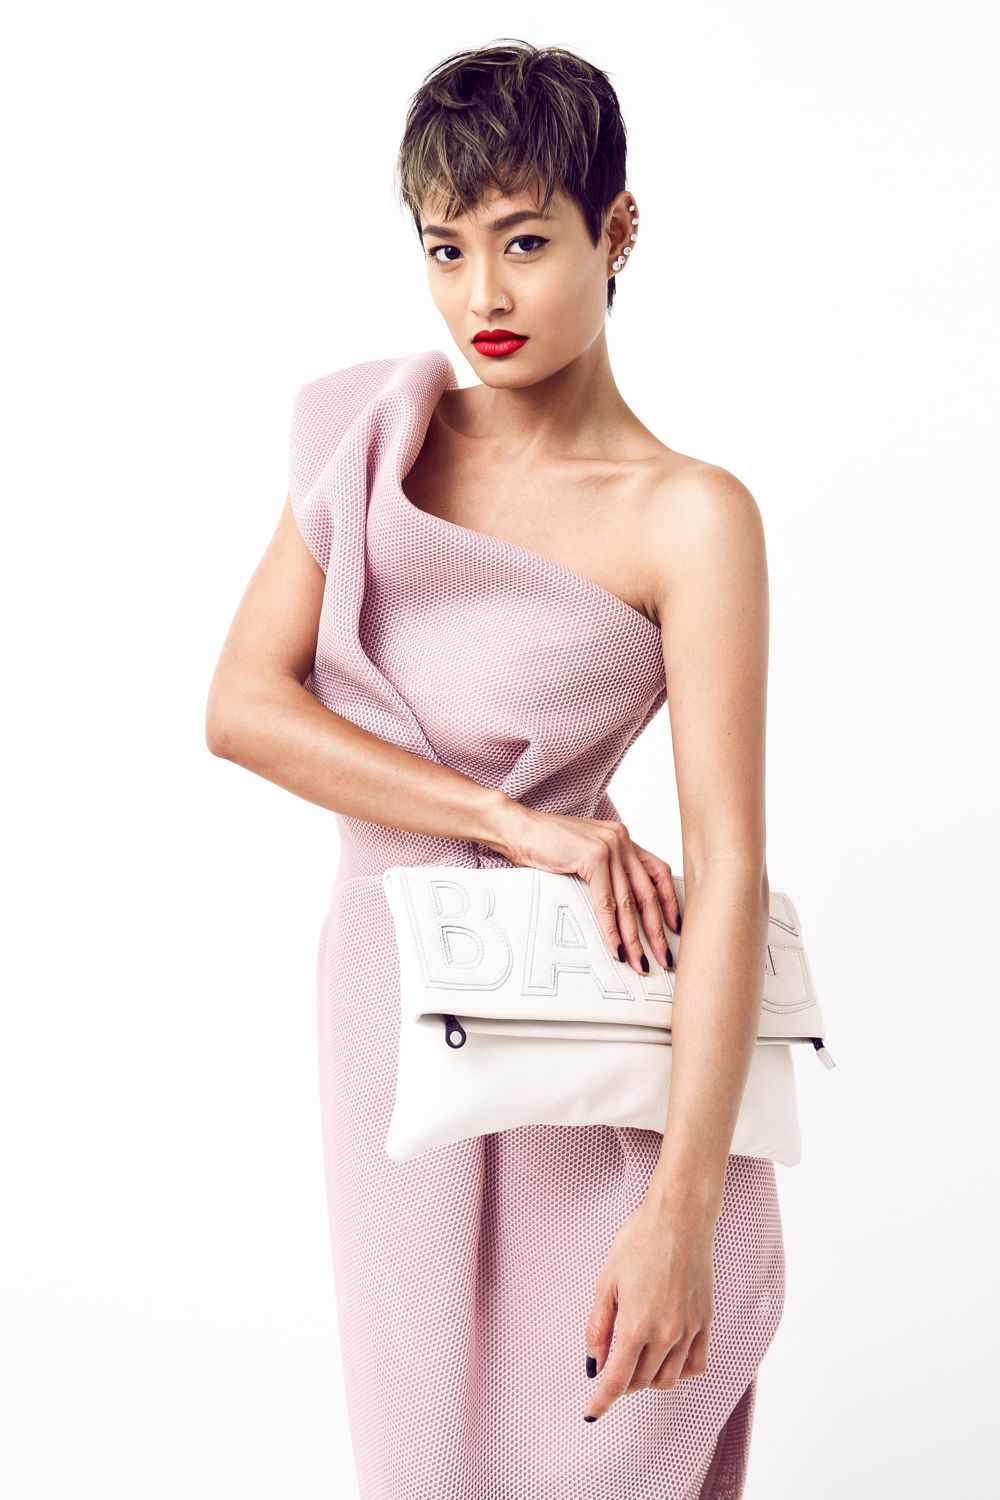 One more shot of Micah's perfect pixie cut. Pastel Editorial | Micah Gianneli- Love the way she rocks this dress!